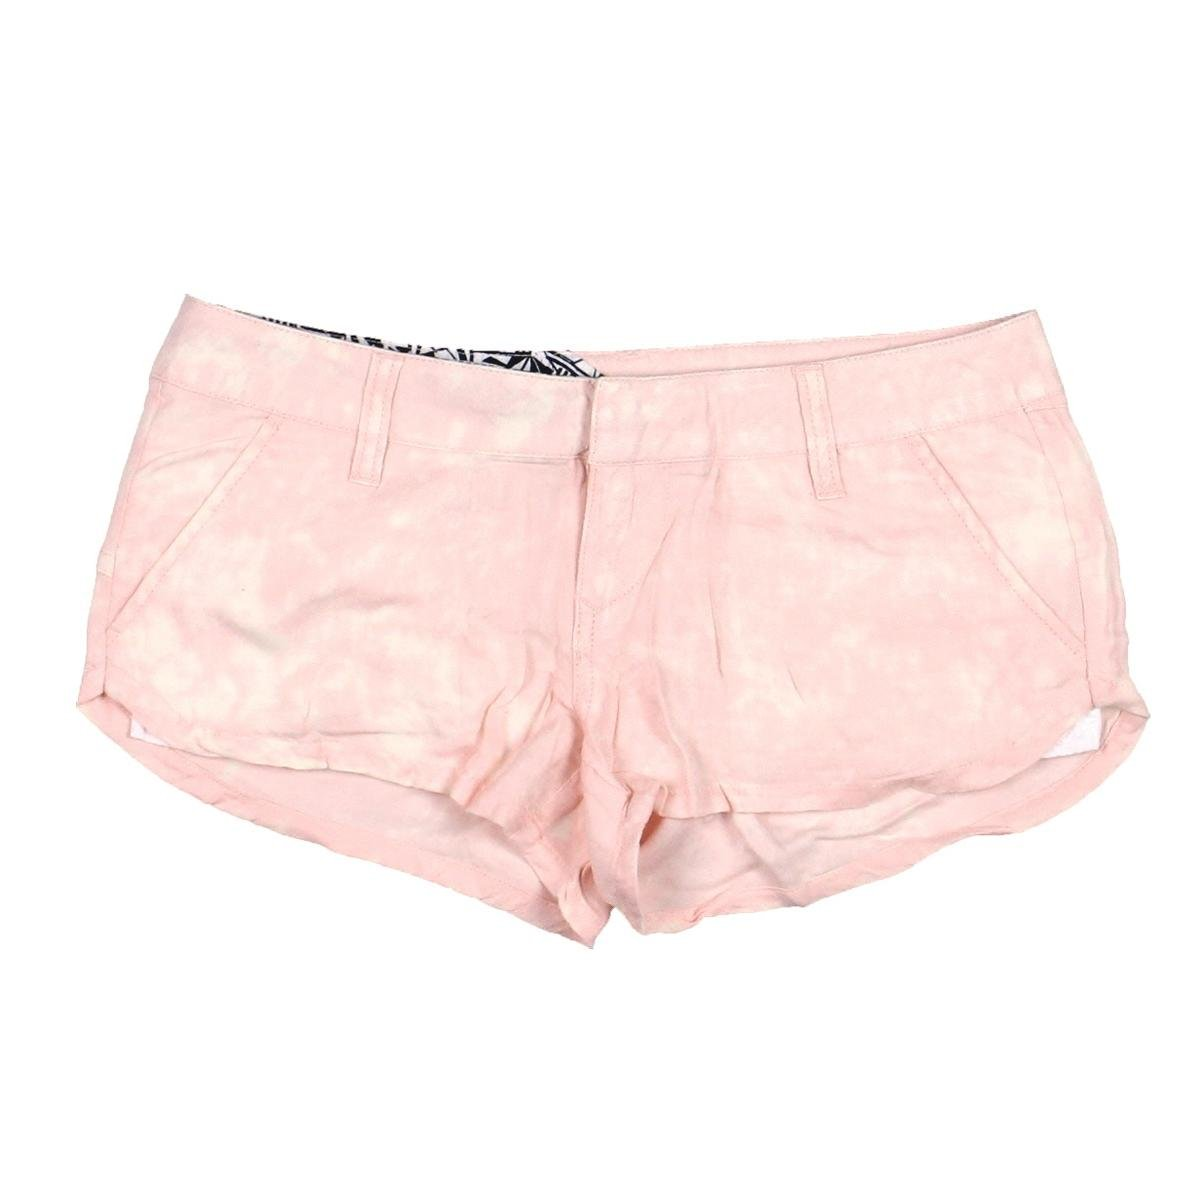 Volcom Juniors Ur A Pistol Short, Light Pink, 5